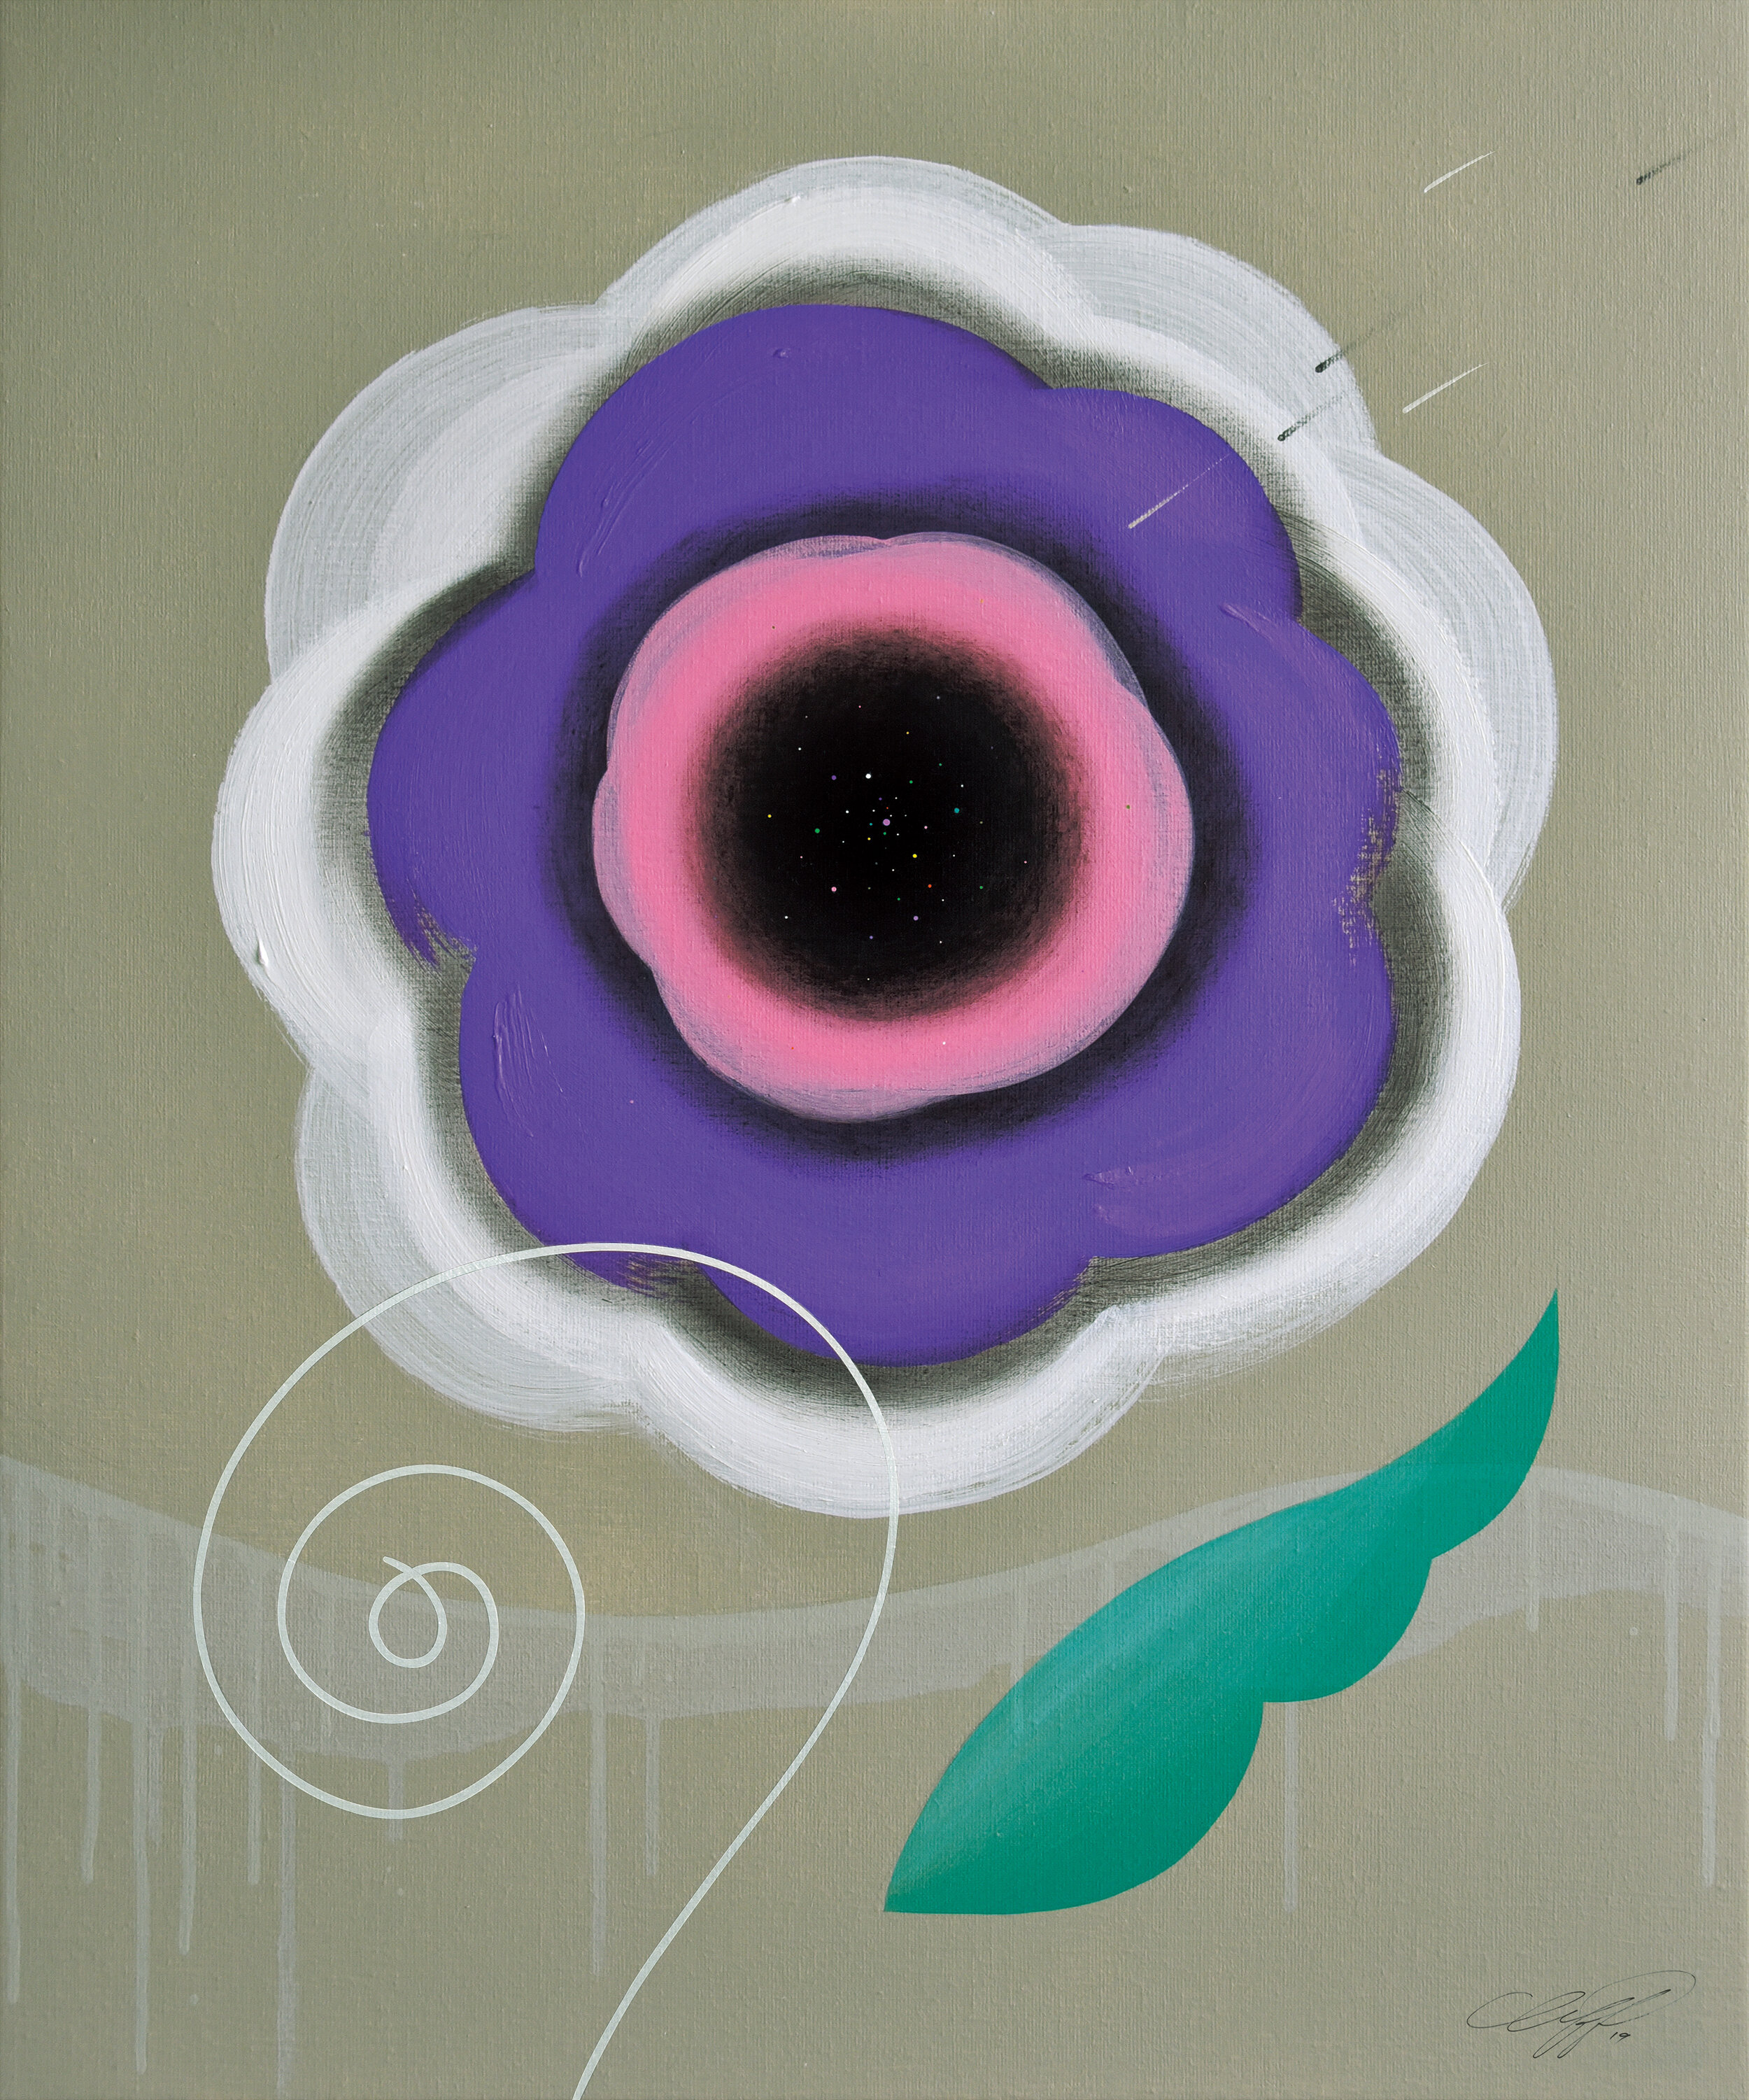 """The Beginning of Life No.74, 2019, Acrylic, Charcoal on Canvas, 28""""x24""""  Abstract painting of a flower in purple, pink, green and white on gray background"""